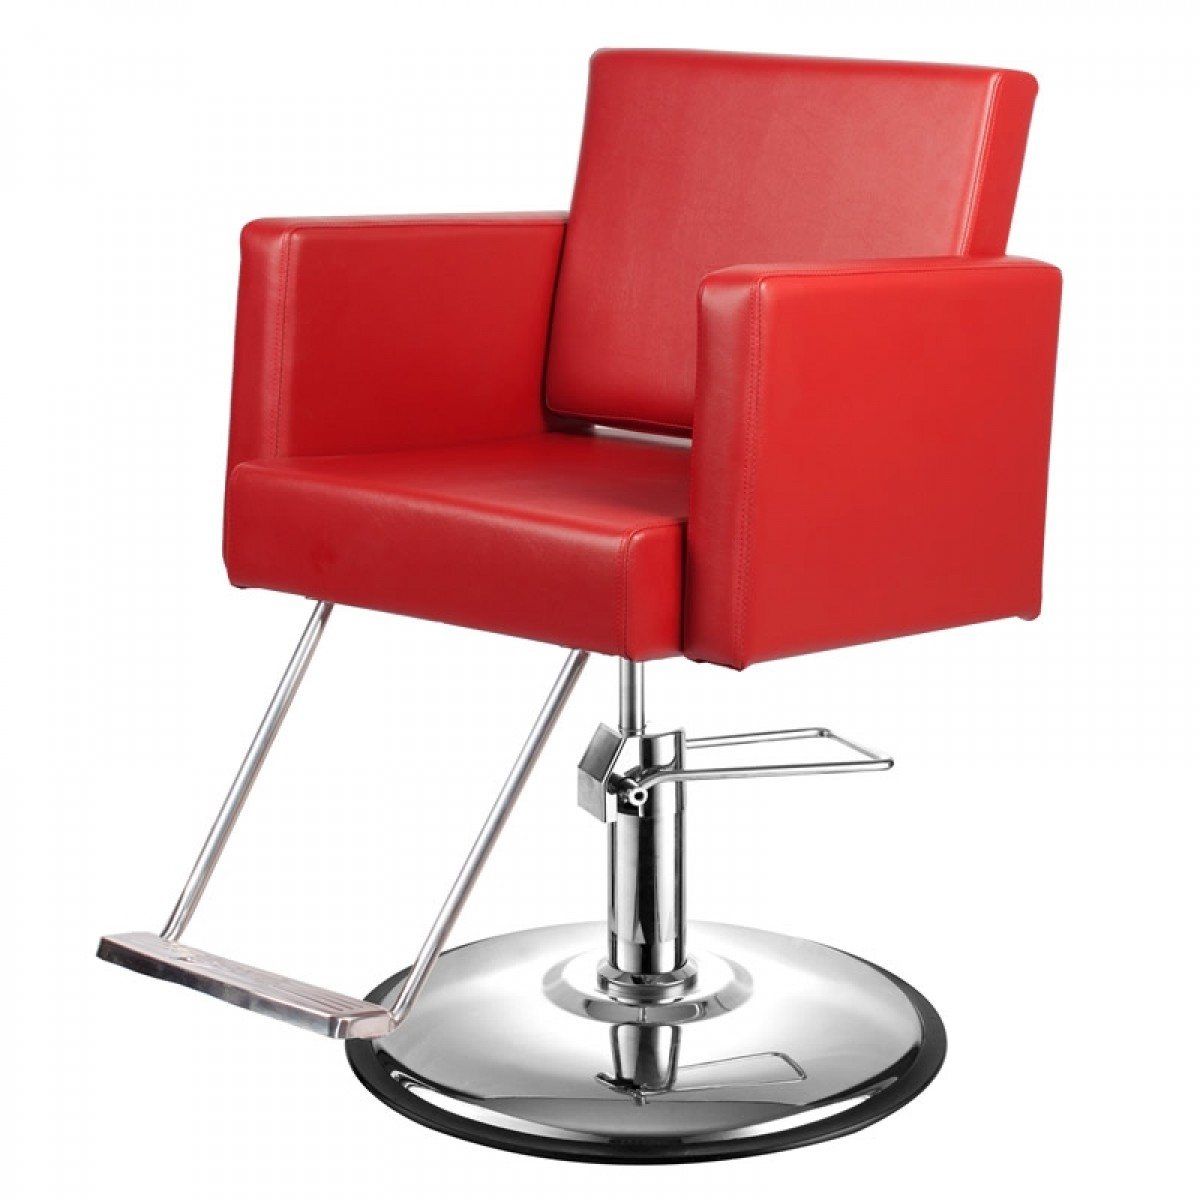 """canon"" salon styling chair  salon chairs, styling chairs"